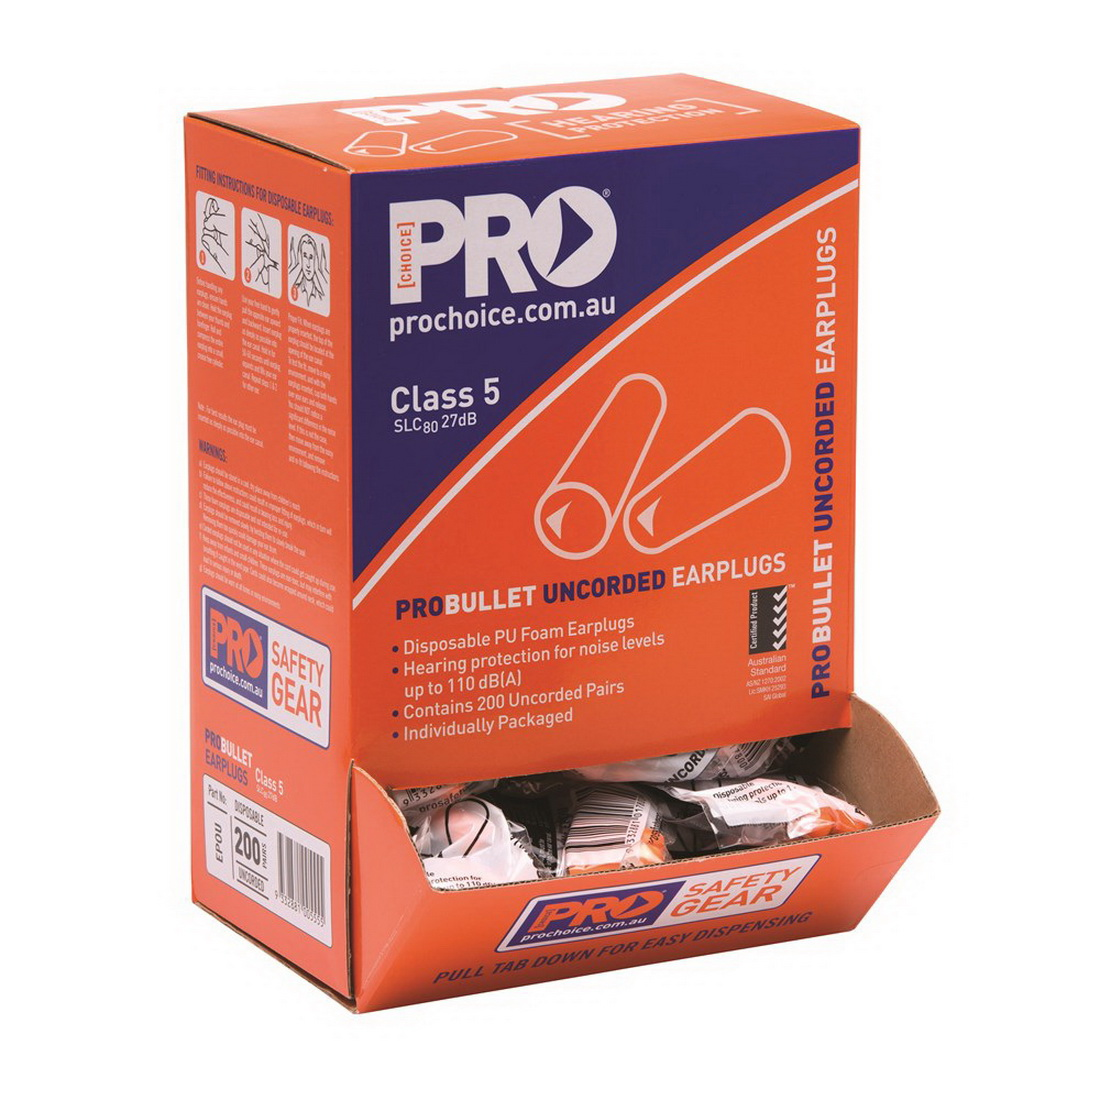 ProBullet Class 5 27dB Tapered Disposable Earplug Uncorded 200 Pairs Box